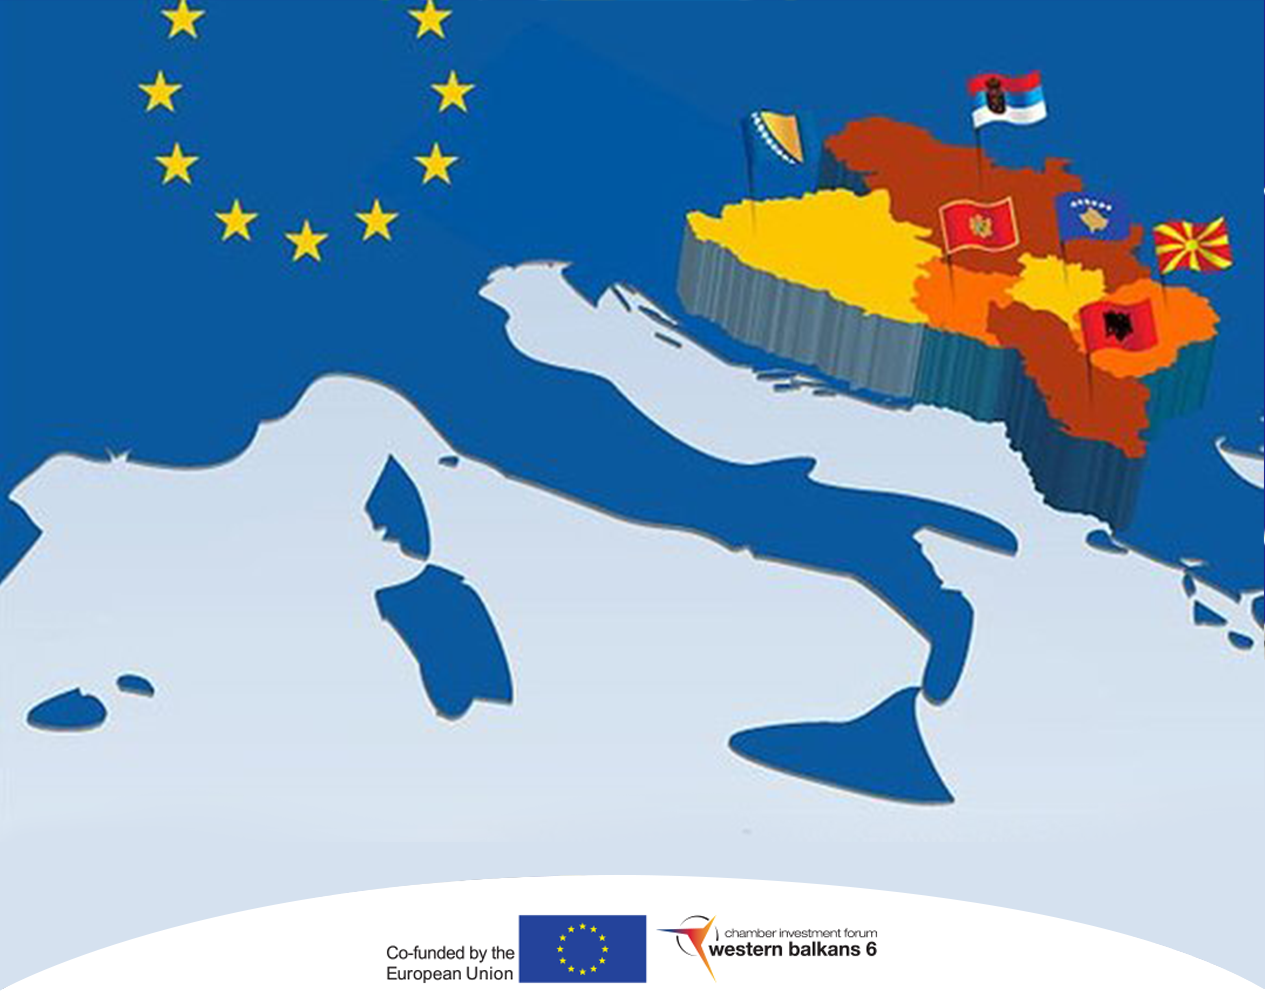 Economic and Investment Plan for the Western Balkans